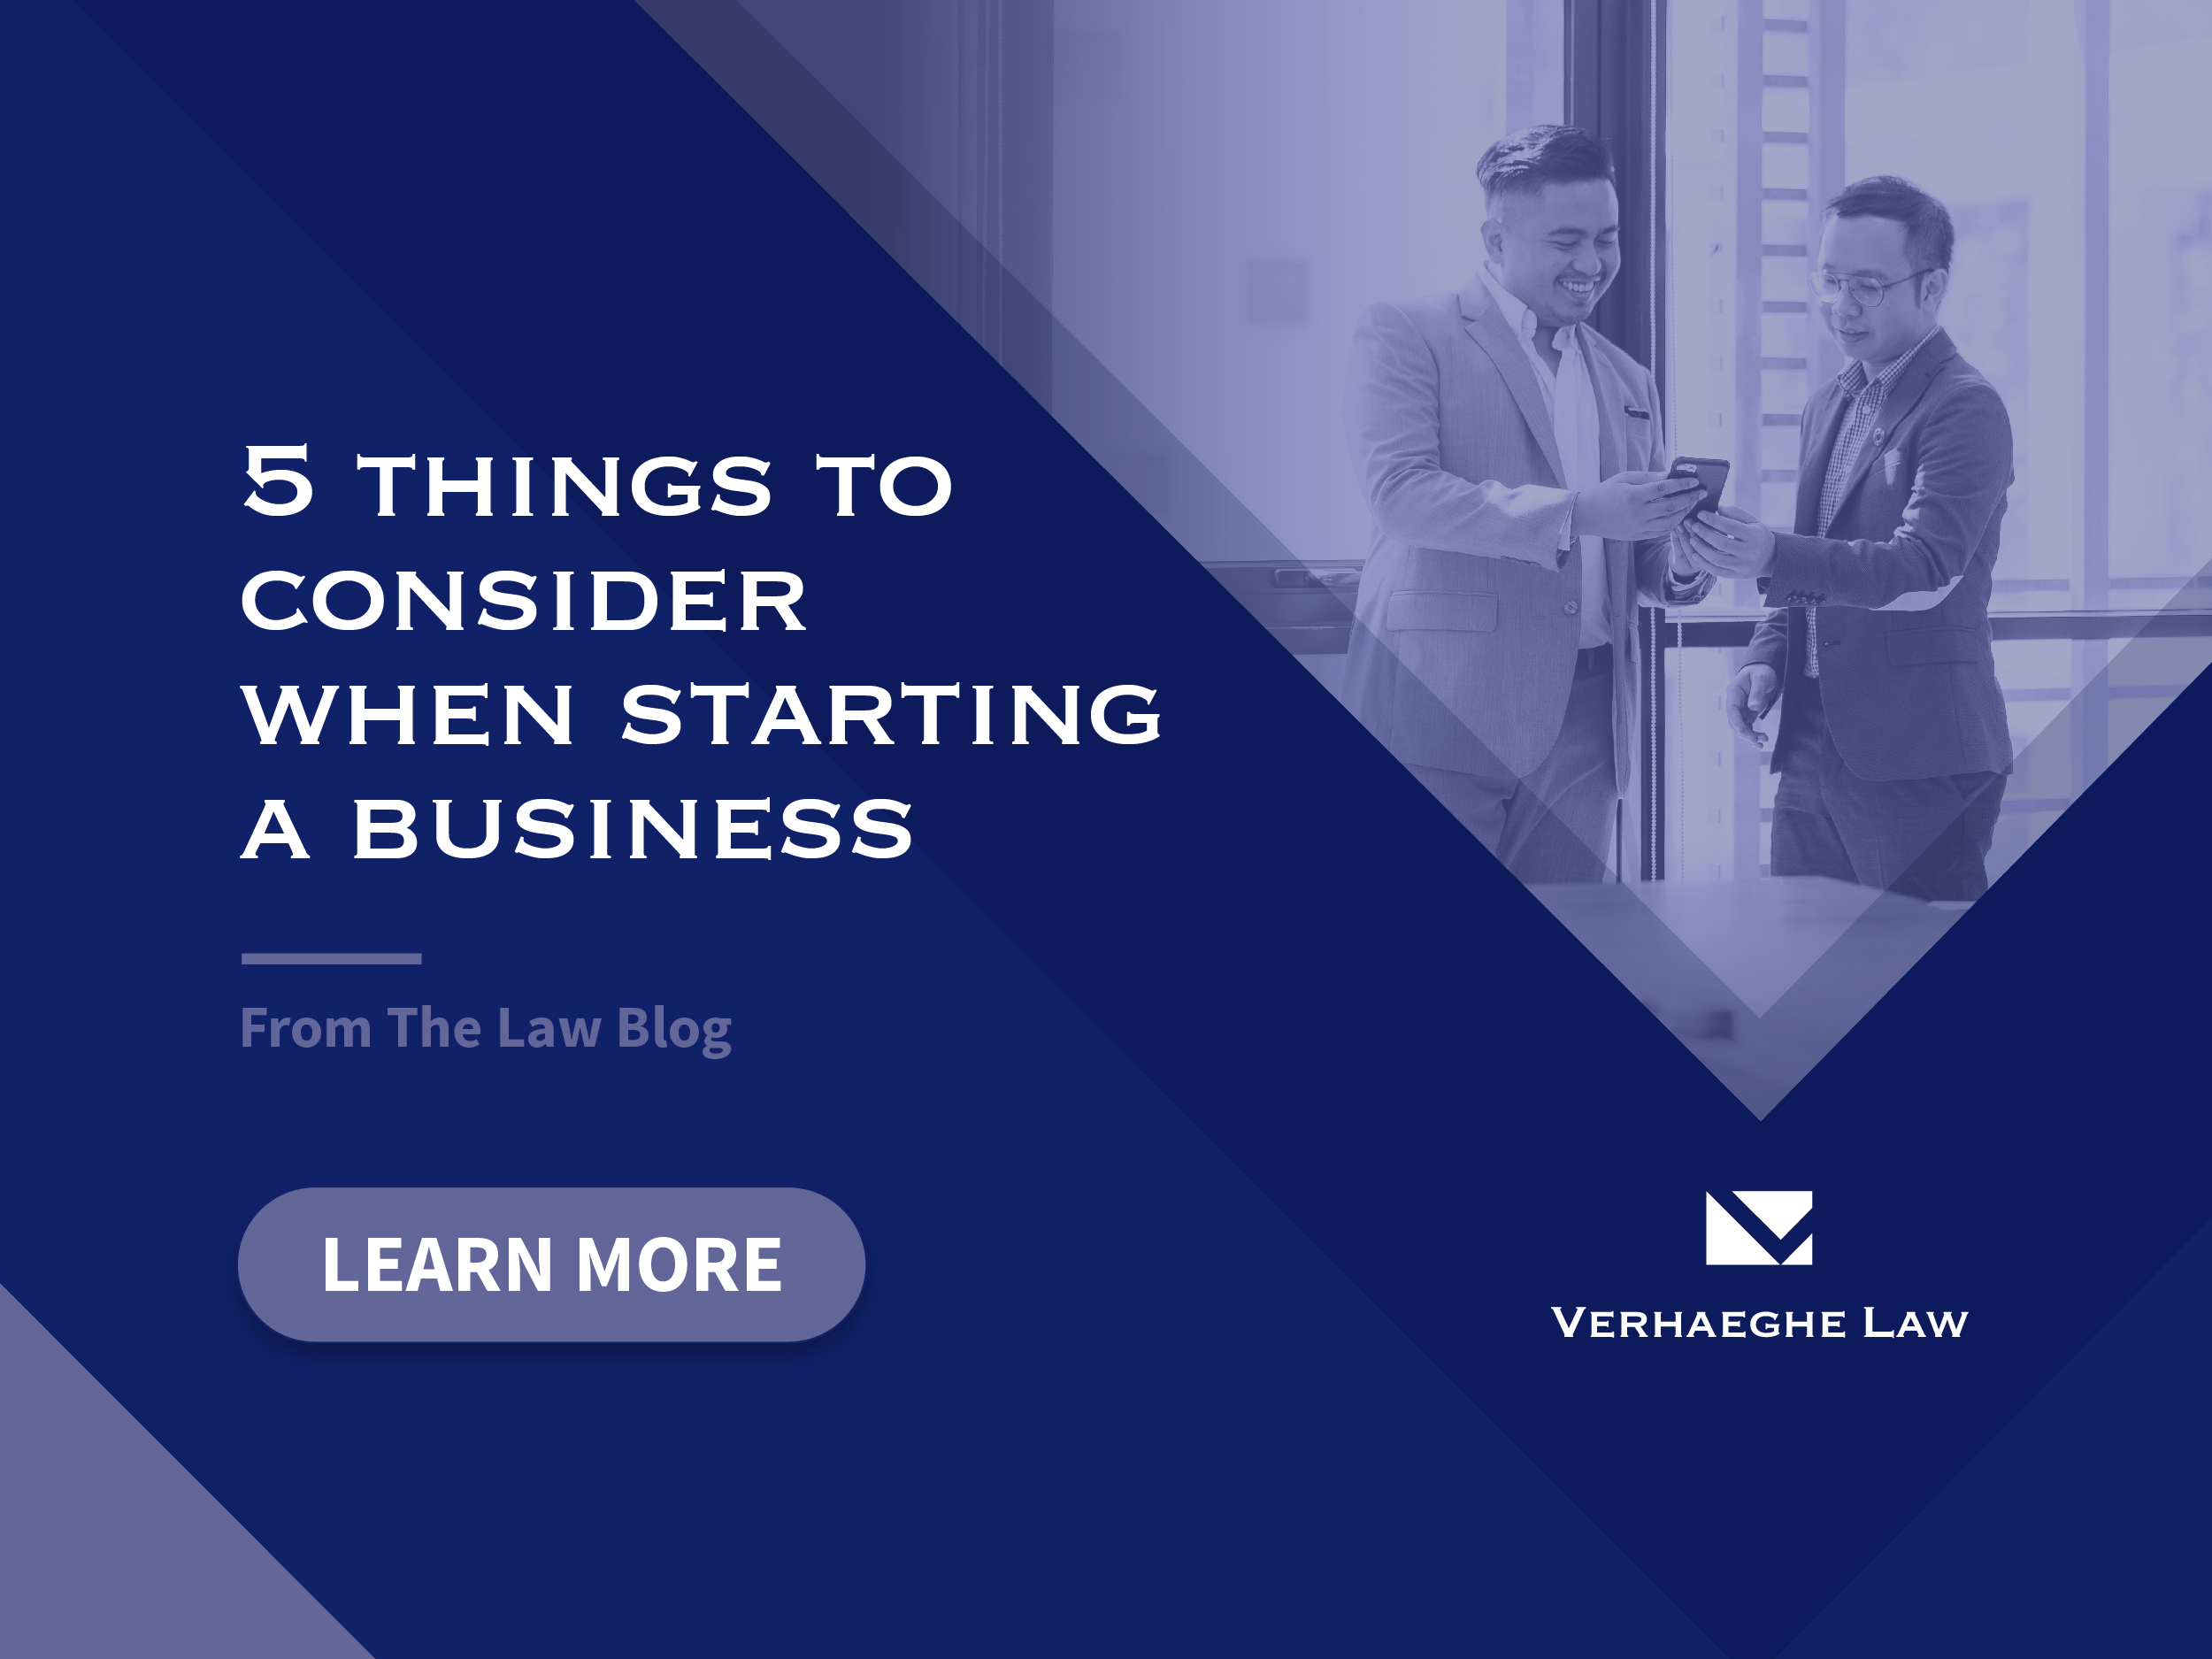 Five things to consider when starting a business